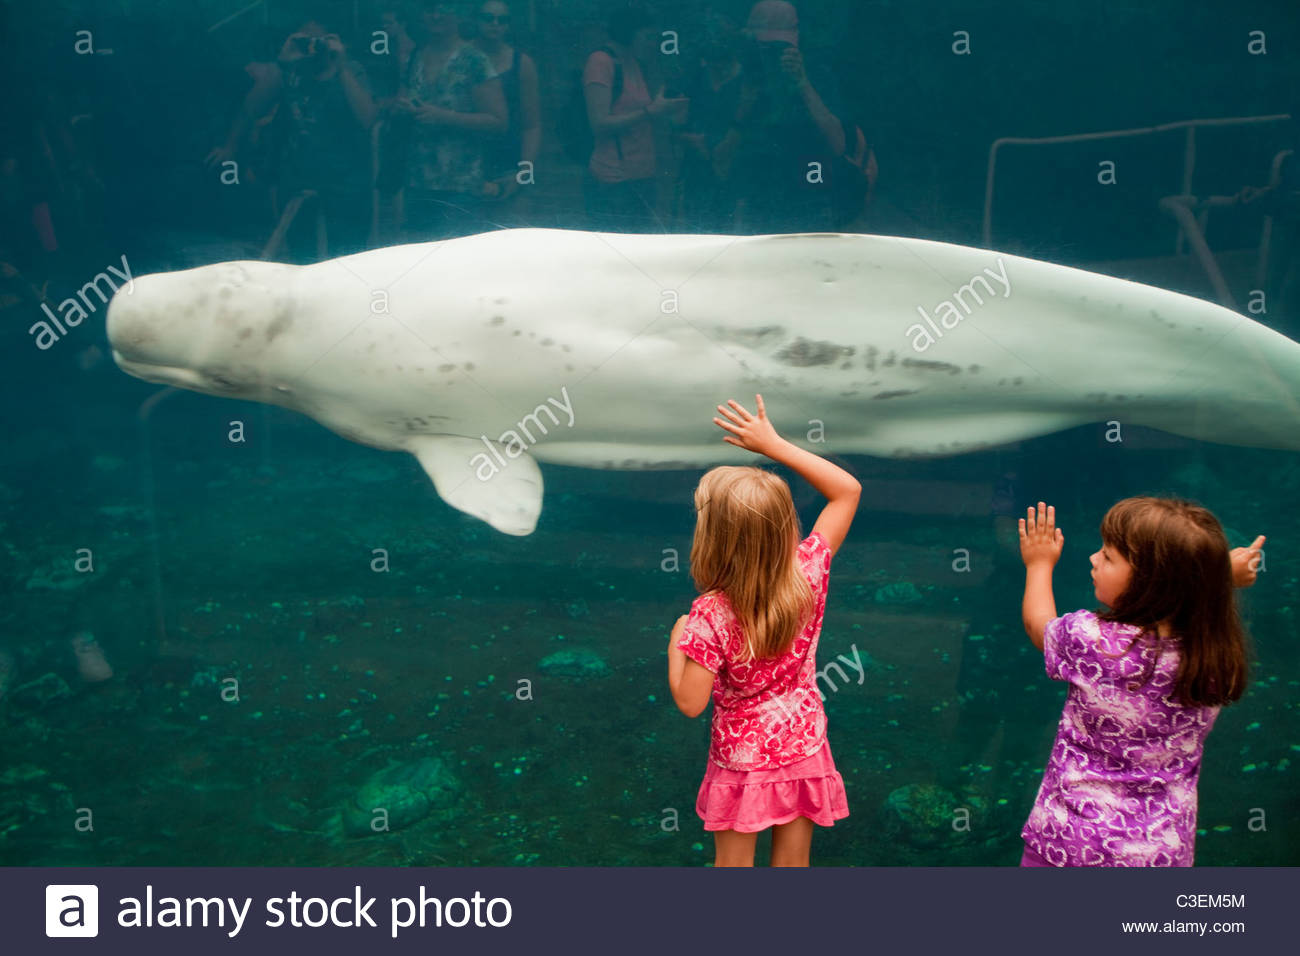 Two young girls enjoy the live Beluga whales at the Mystic Aquarium. Mystic, Connecticut. - Stock Image